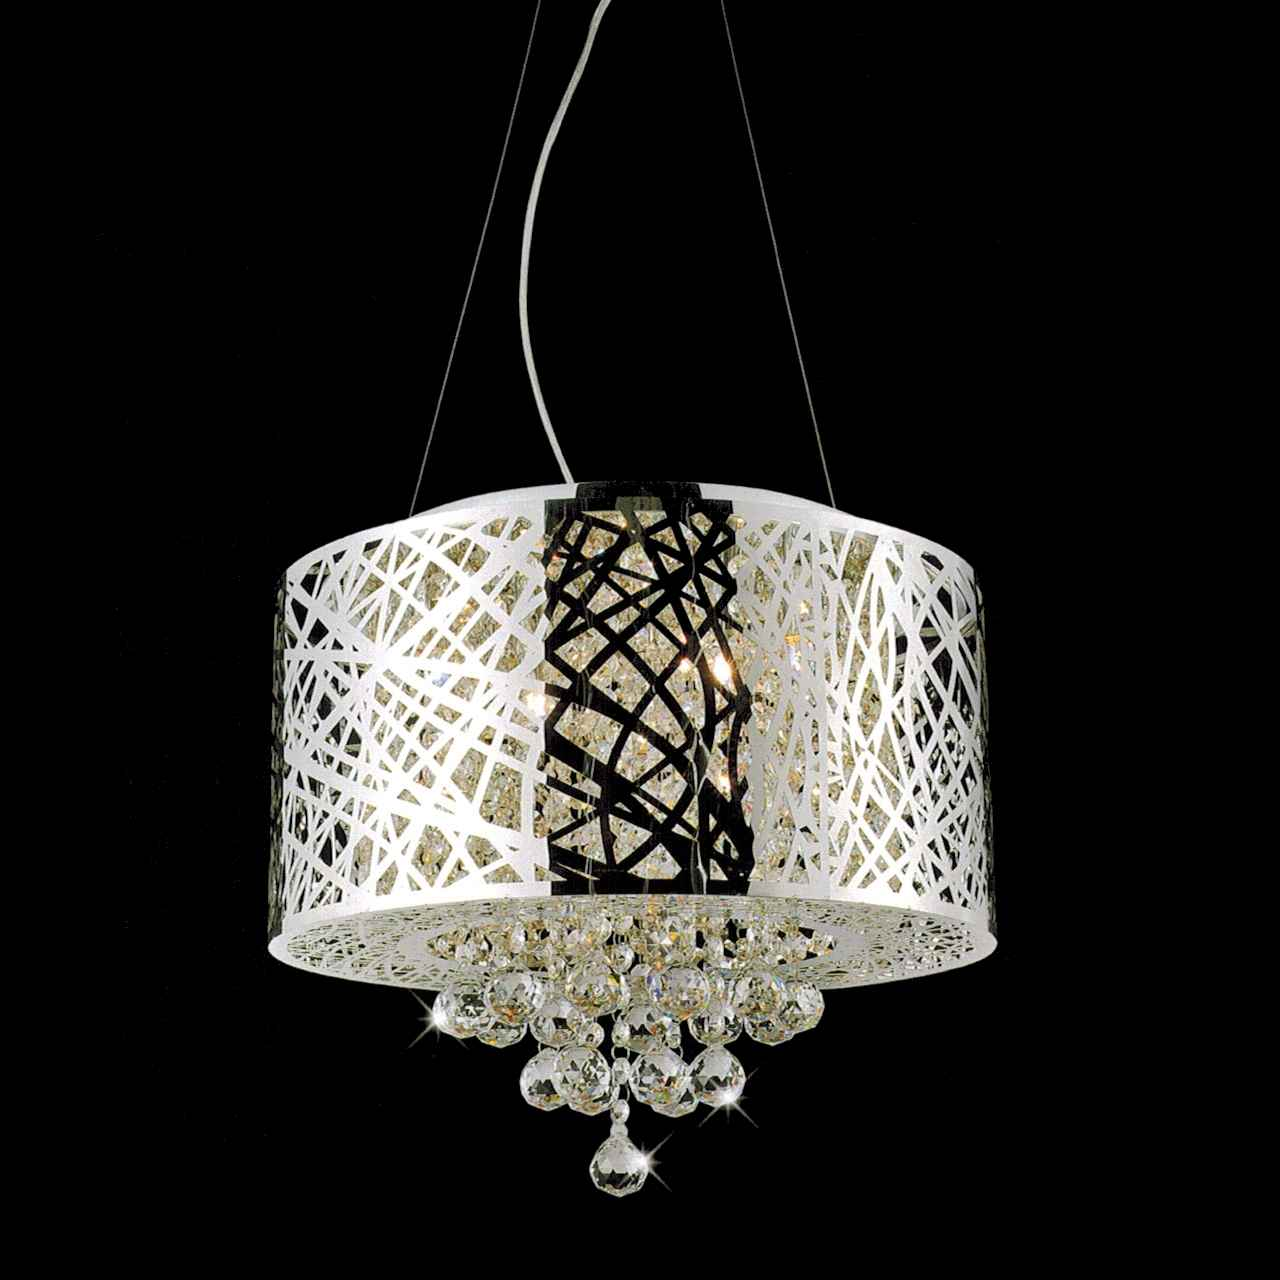 lamp led with lights light chandeliers length chandelier crystal pendant vallkin to dining china room rectangular product modern store ceiling new